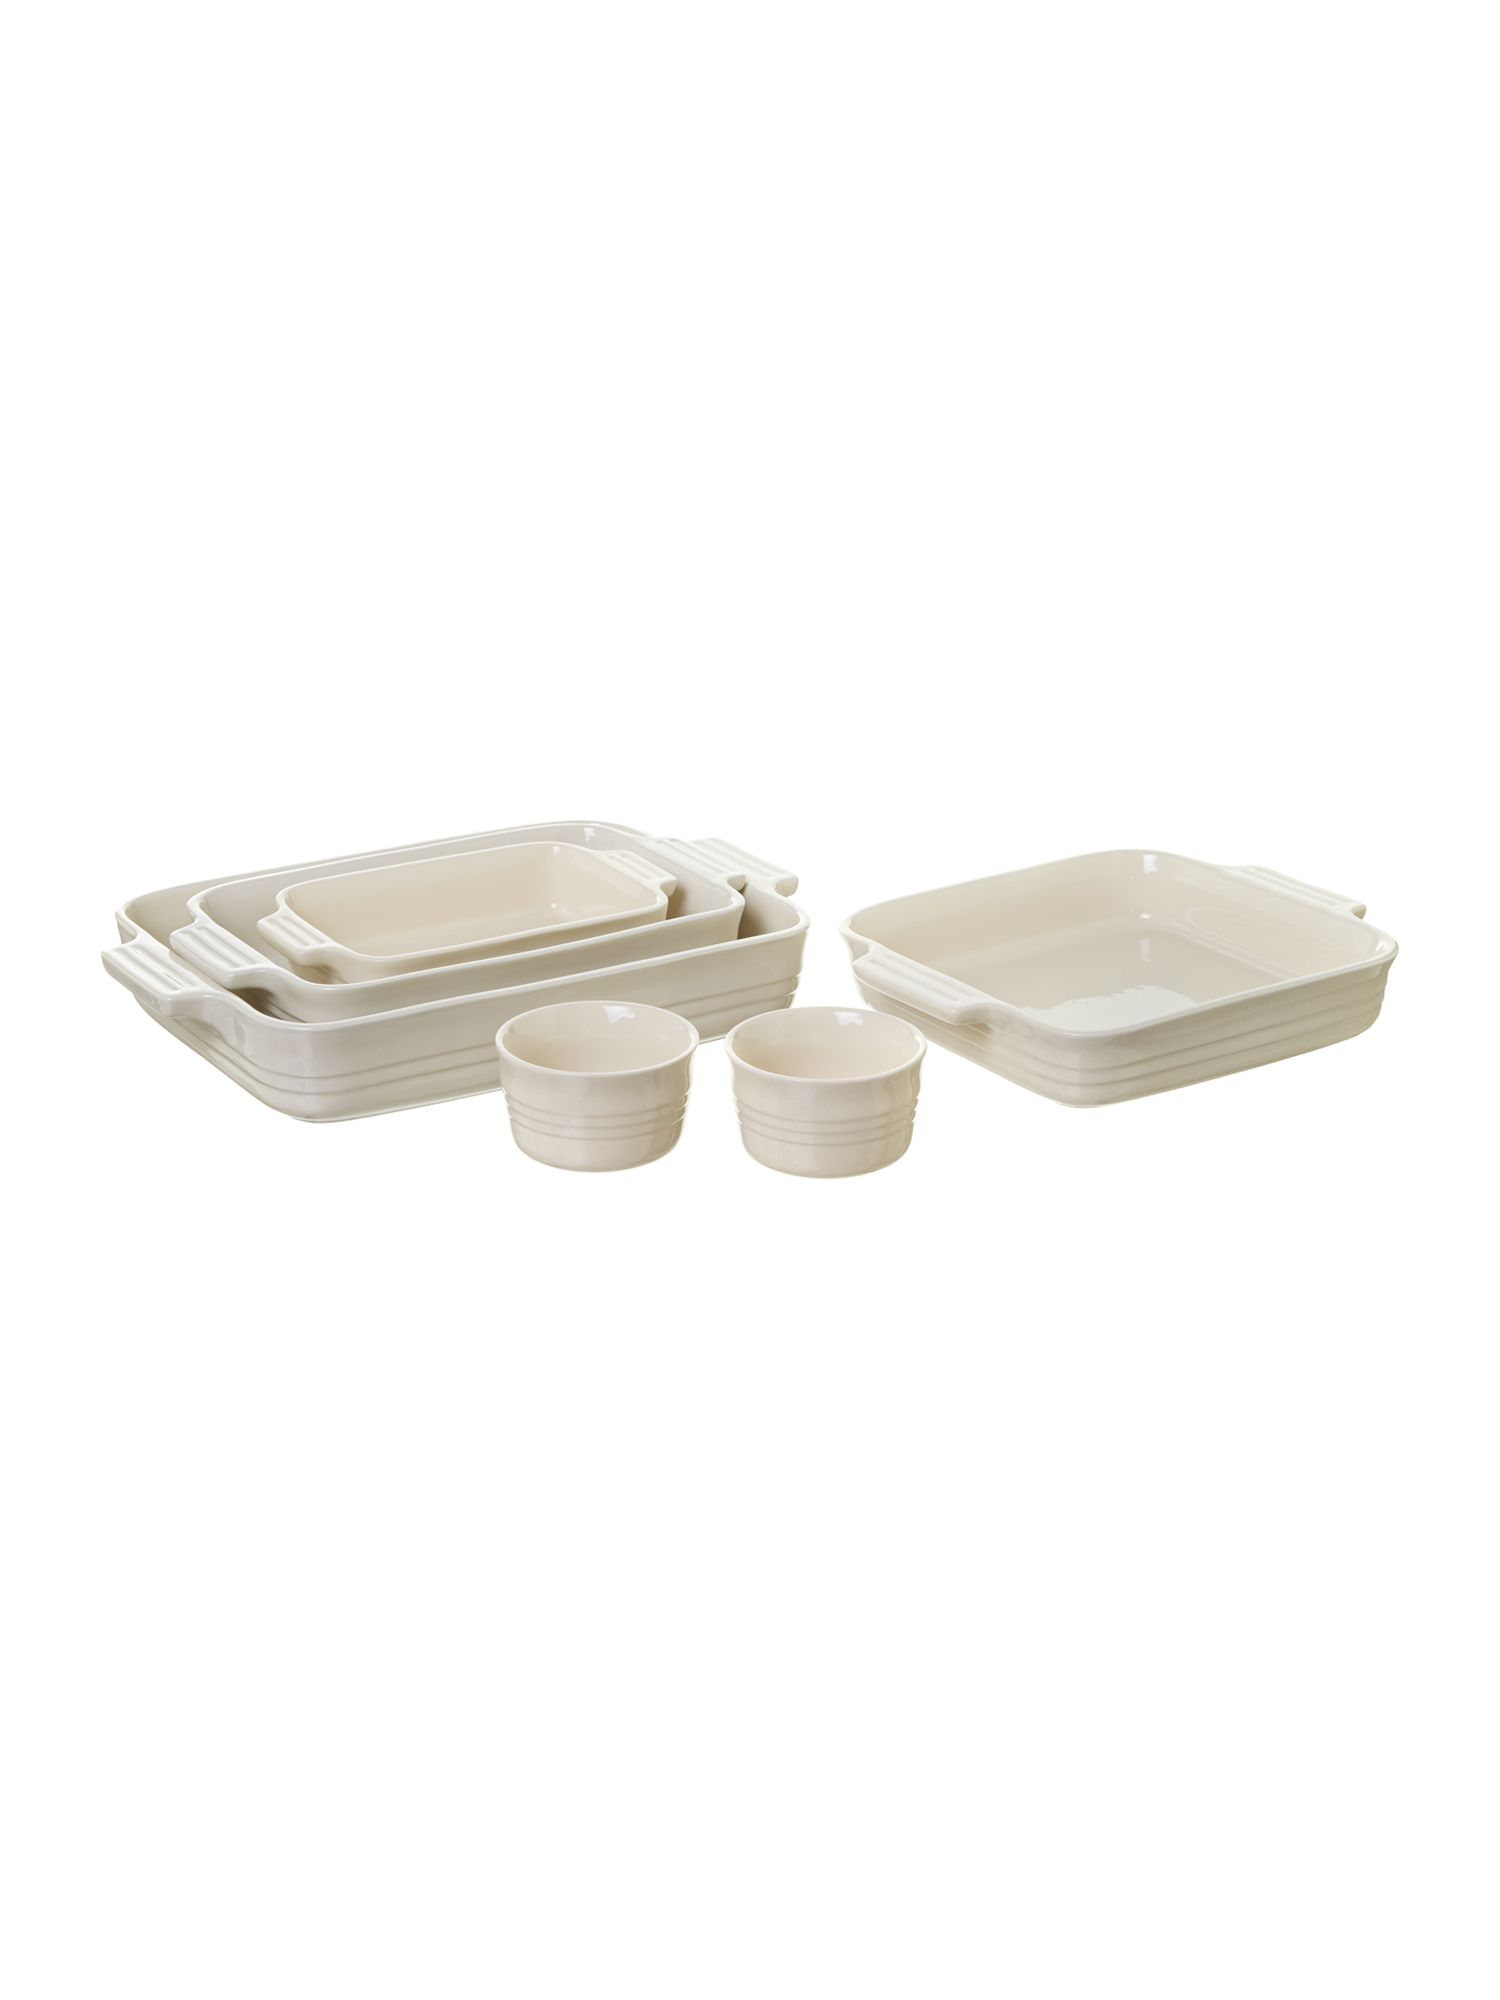 Ovenware range in Almond